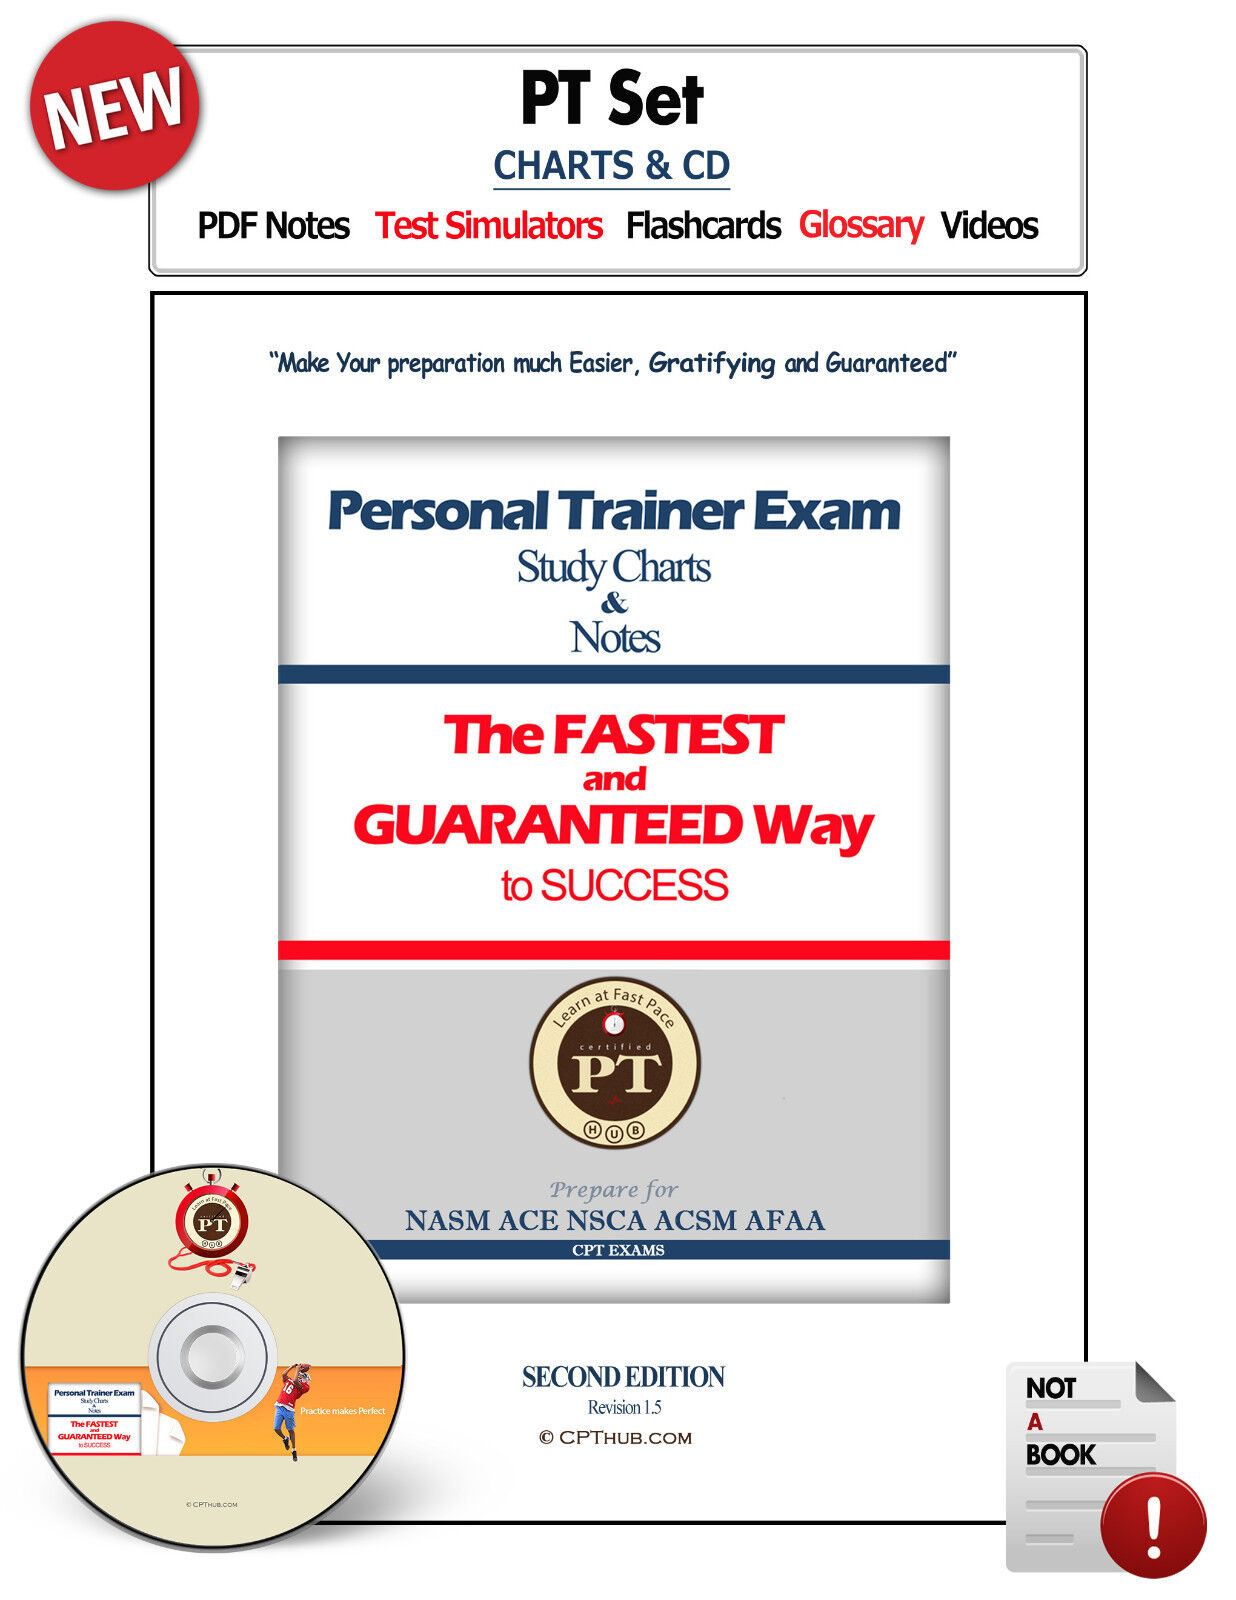 Personal Trainer Exam Certification Set For Nasm Cpt Ace Nsca Acsm